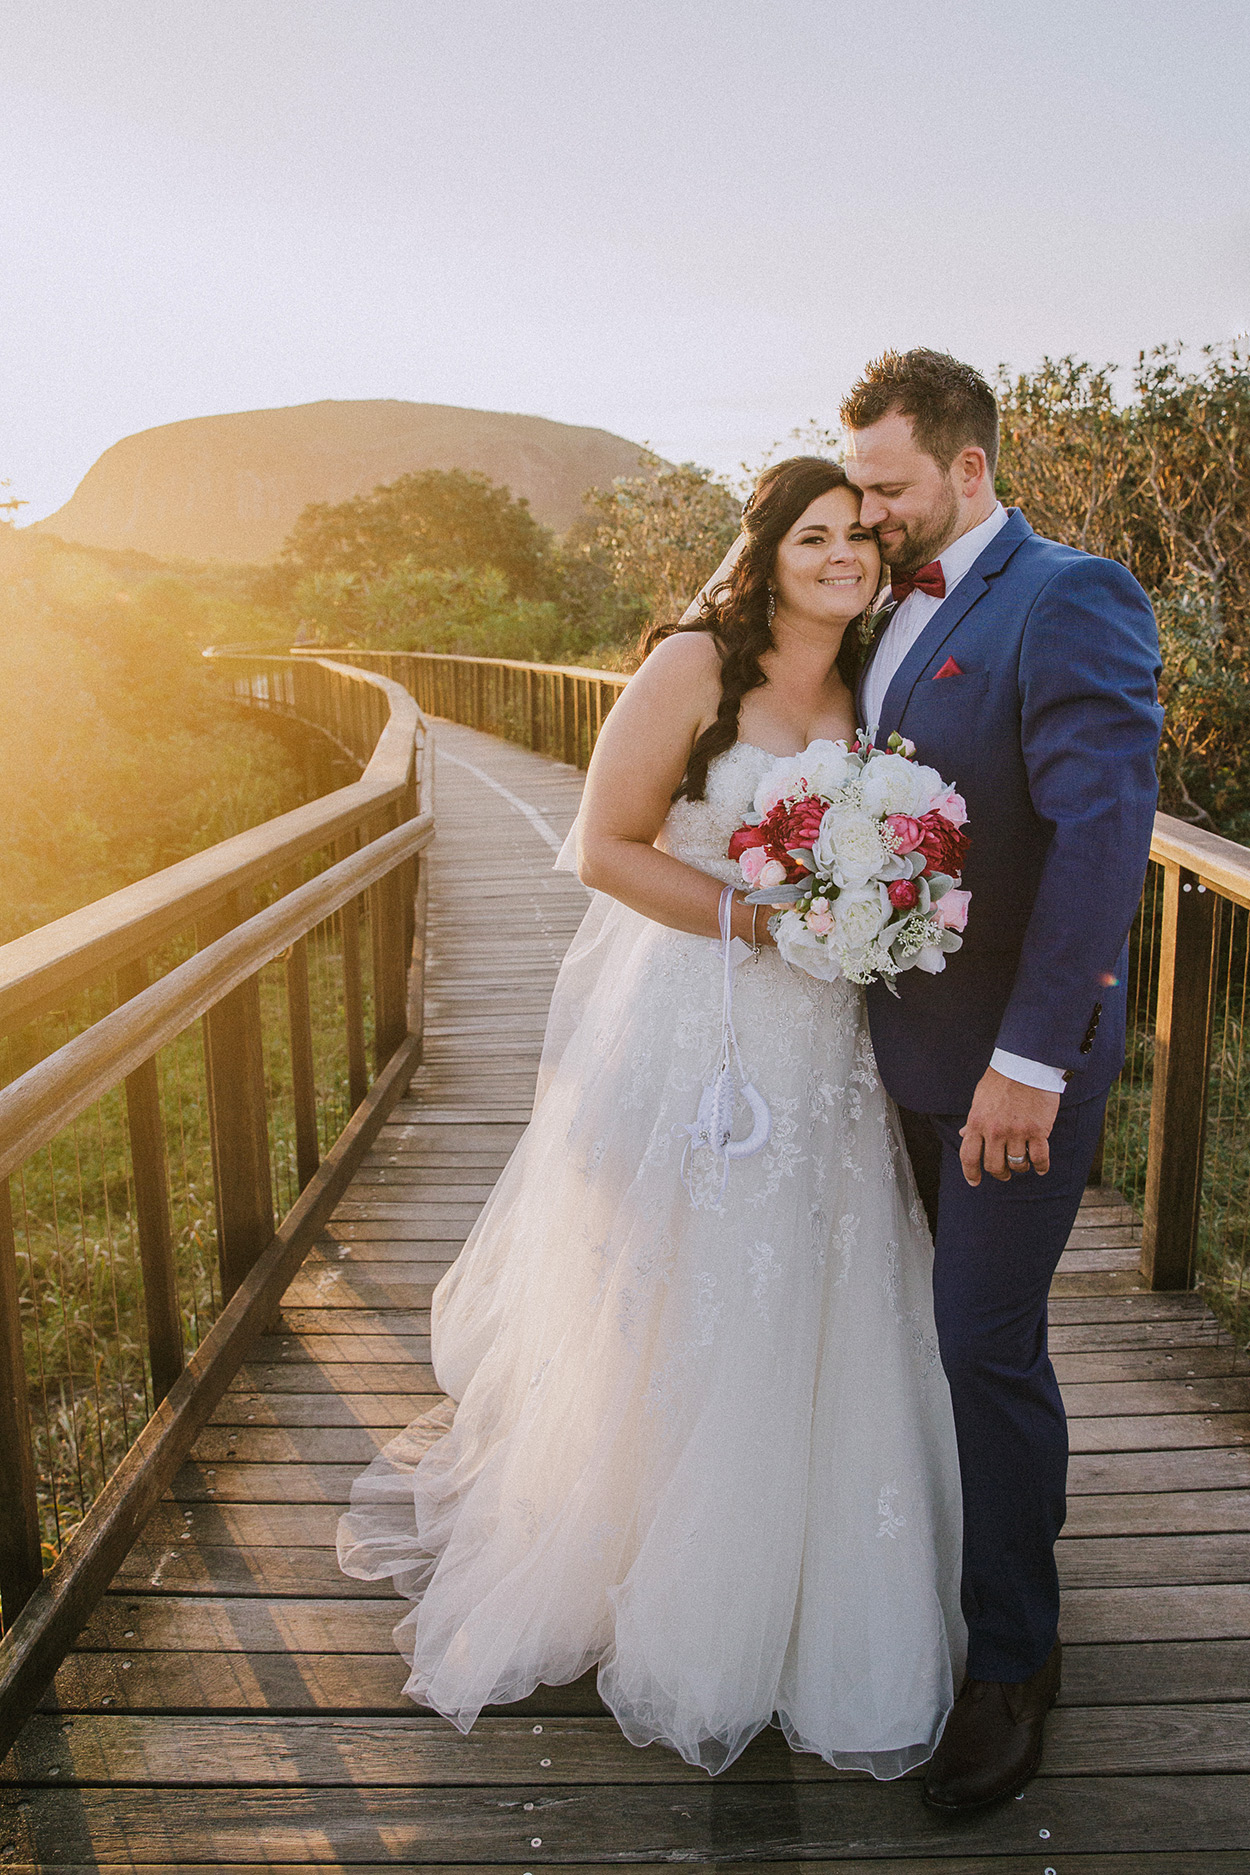 Candid Surfair, Marcoola Bridal Portraits, Sunshine Coast - Mount Coolum, Queensland, Australian Destination Photographer